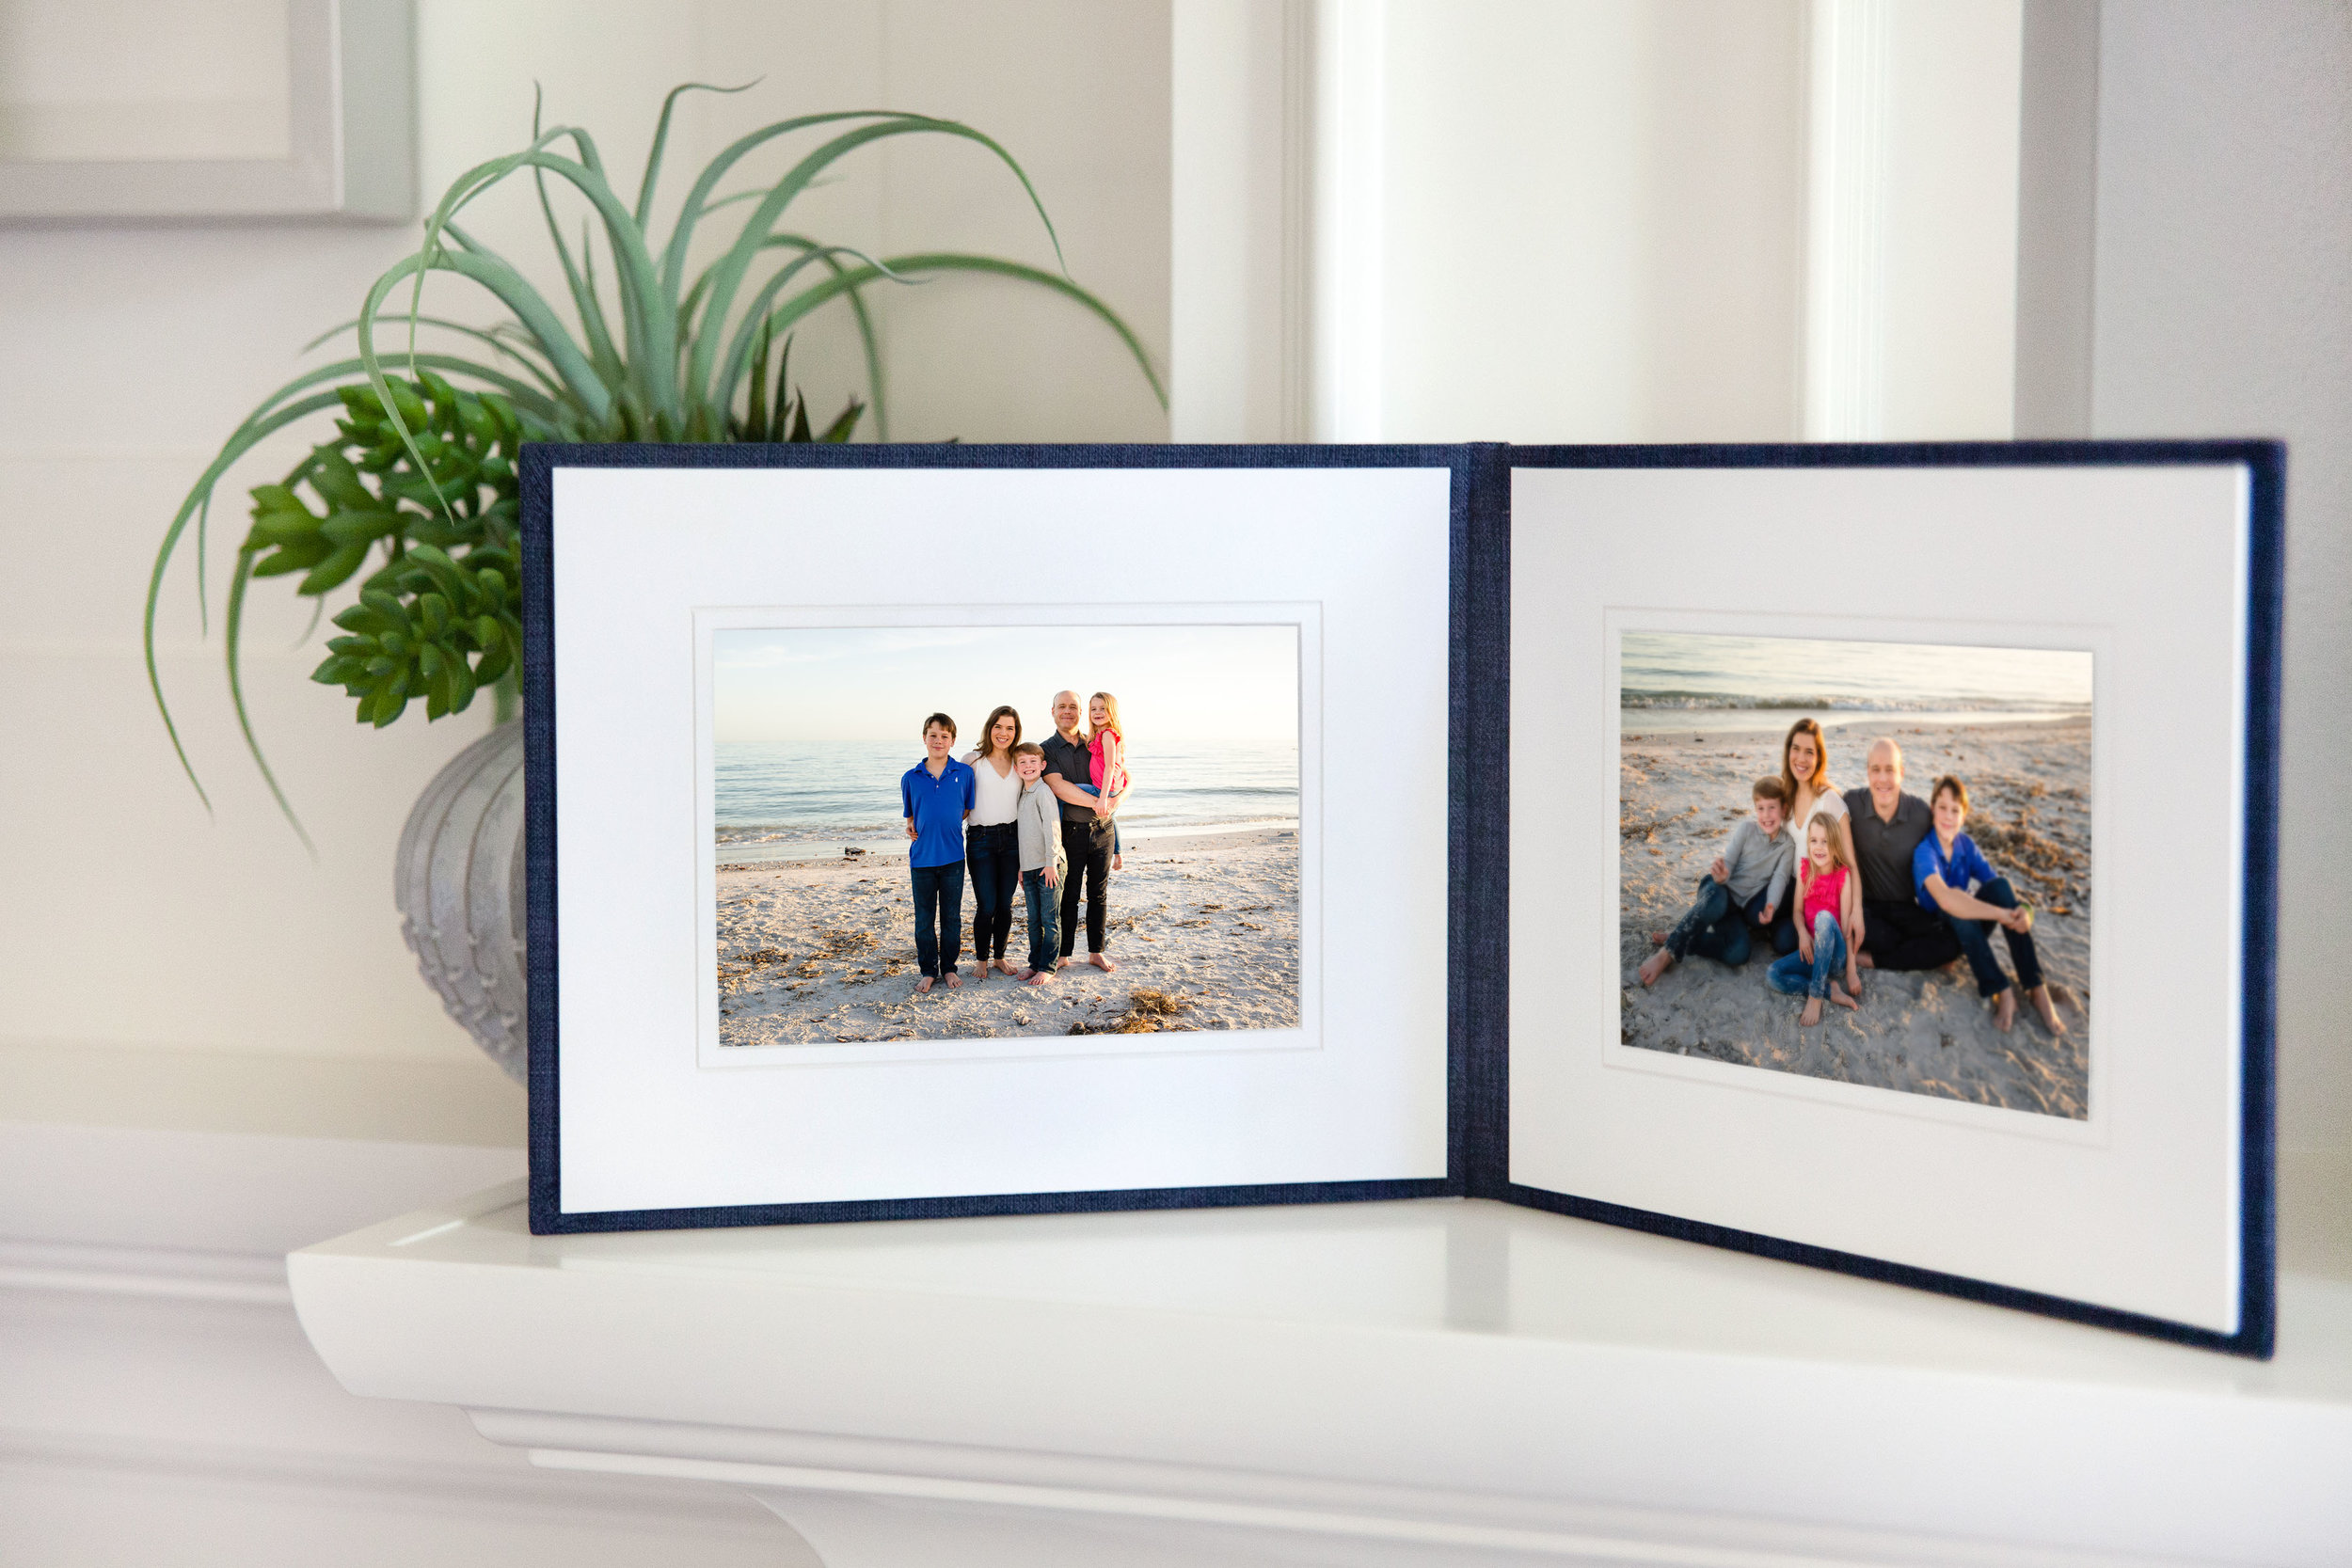 Companion Folios - Available in complimentary covers to your albums, these companion folios make the most amazing gift for grandparents!